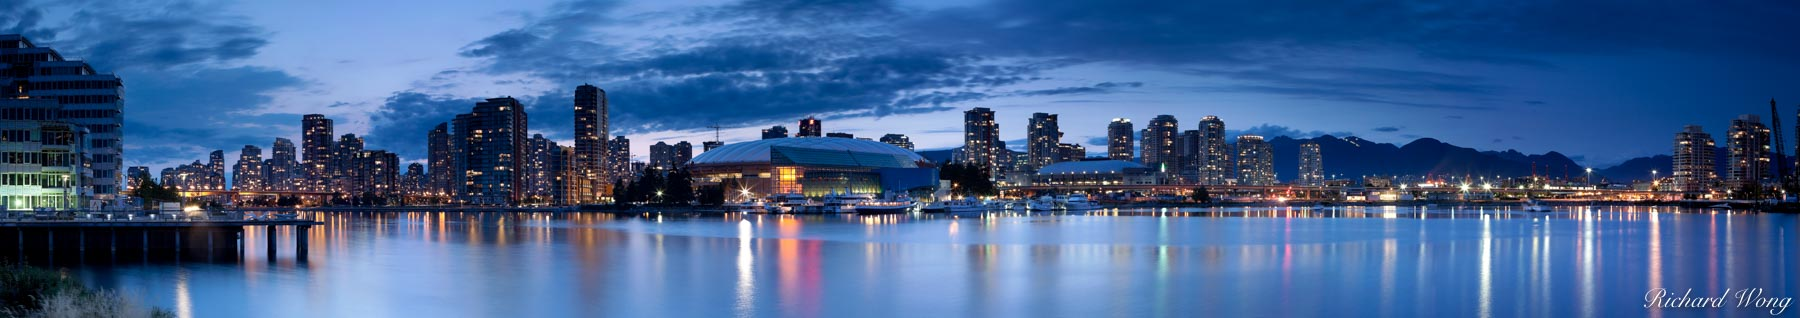 Vancouver Skyline Panoramic and False Creek at Night, British Columbia, Canada, photo, photo